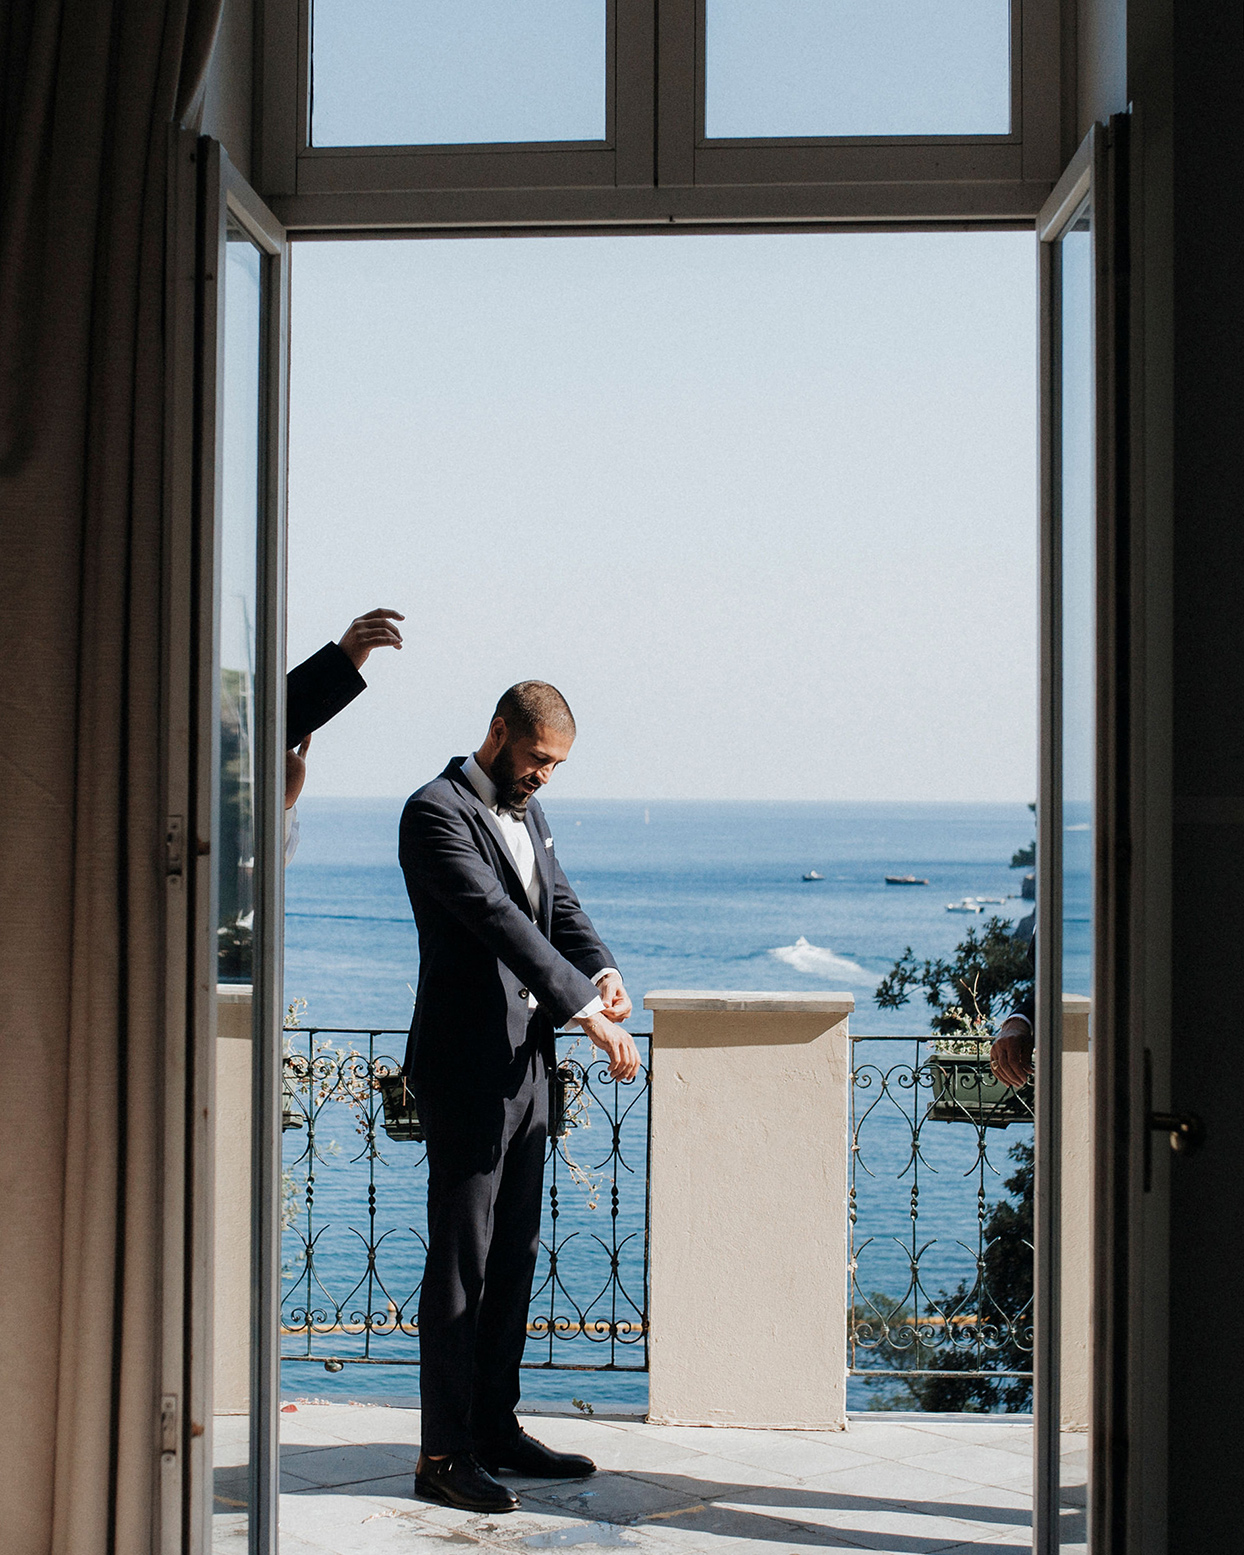 jaclyn antonio wedding groom getting ready overlooking water